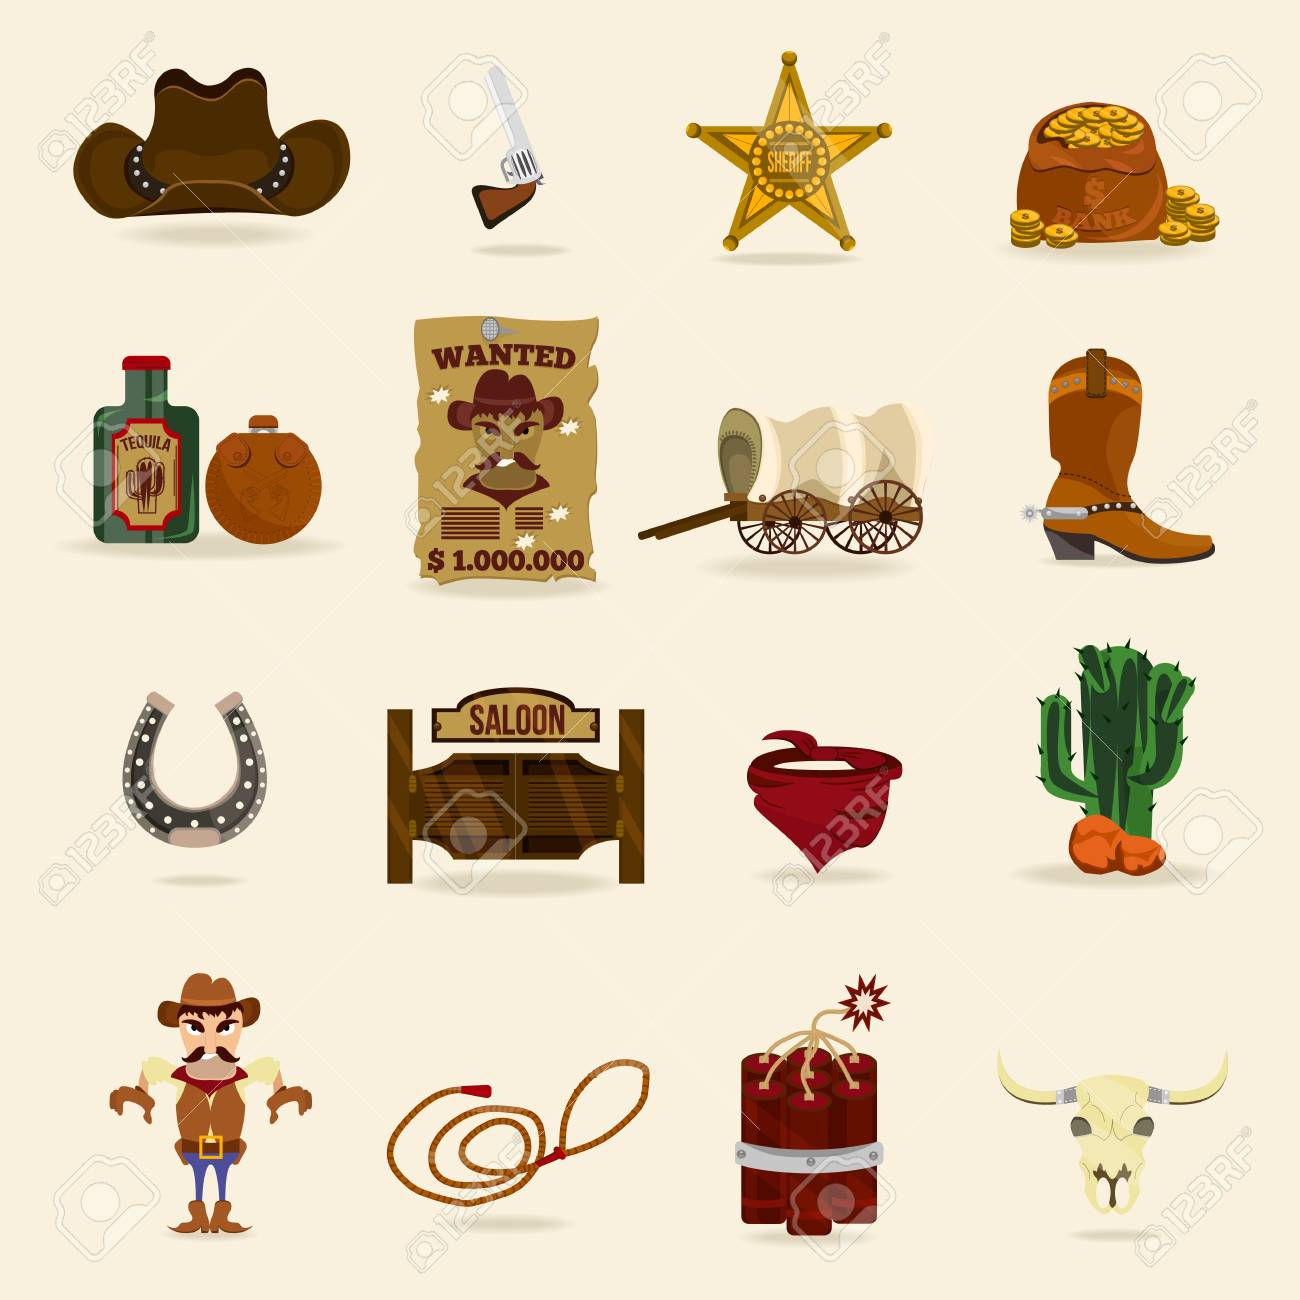 54b4e286796 Vector - Wild west cowboy objects and design elements with horseshoe